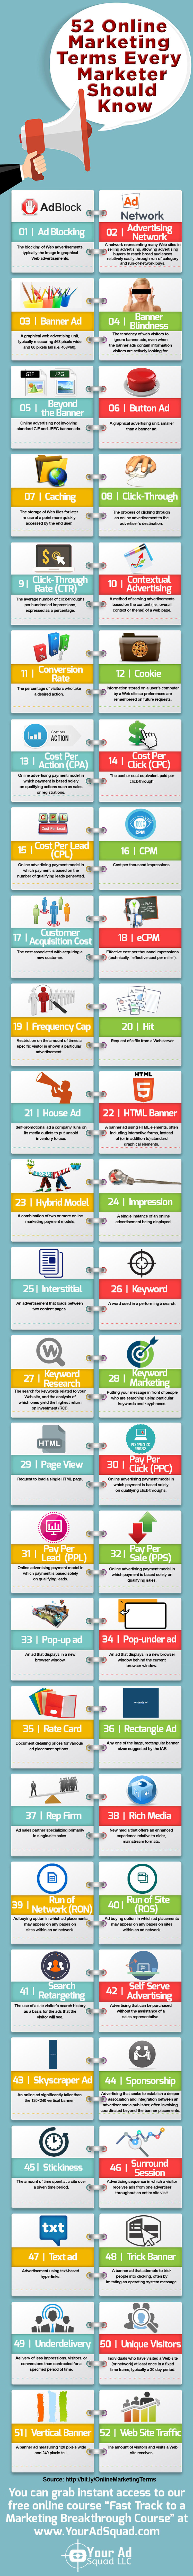 52 marketing terms you should know.